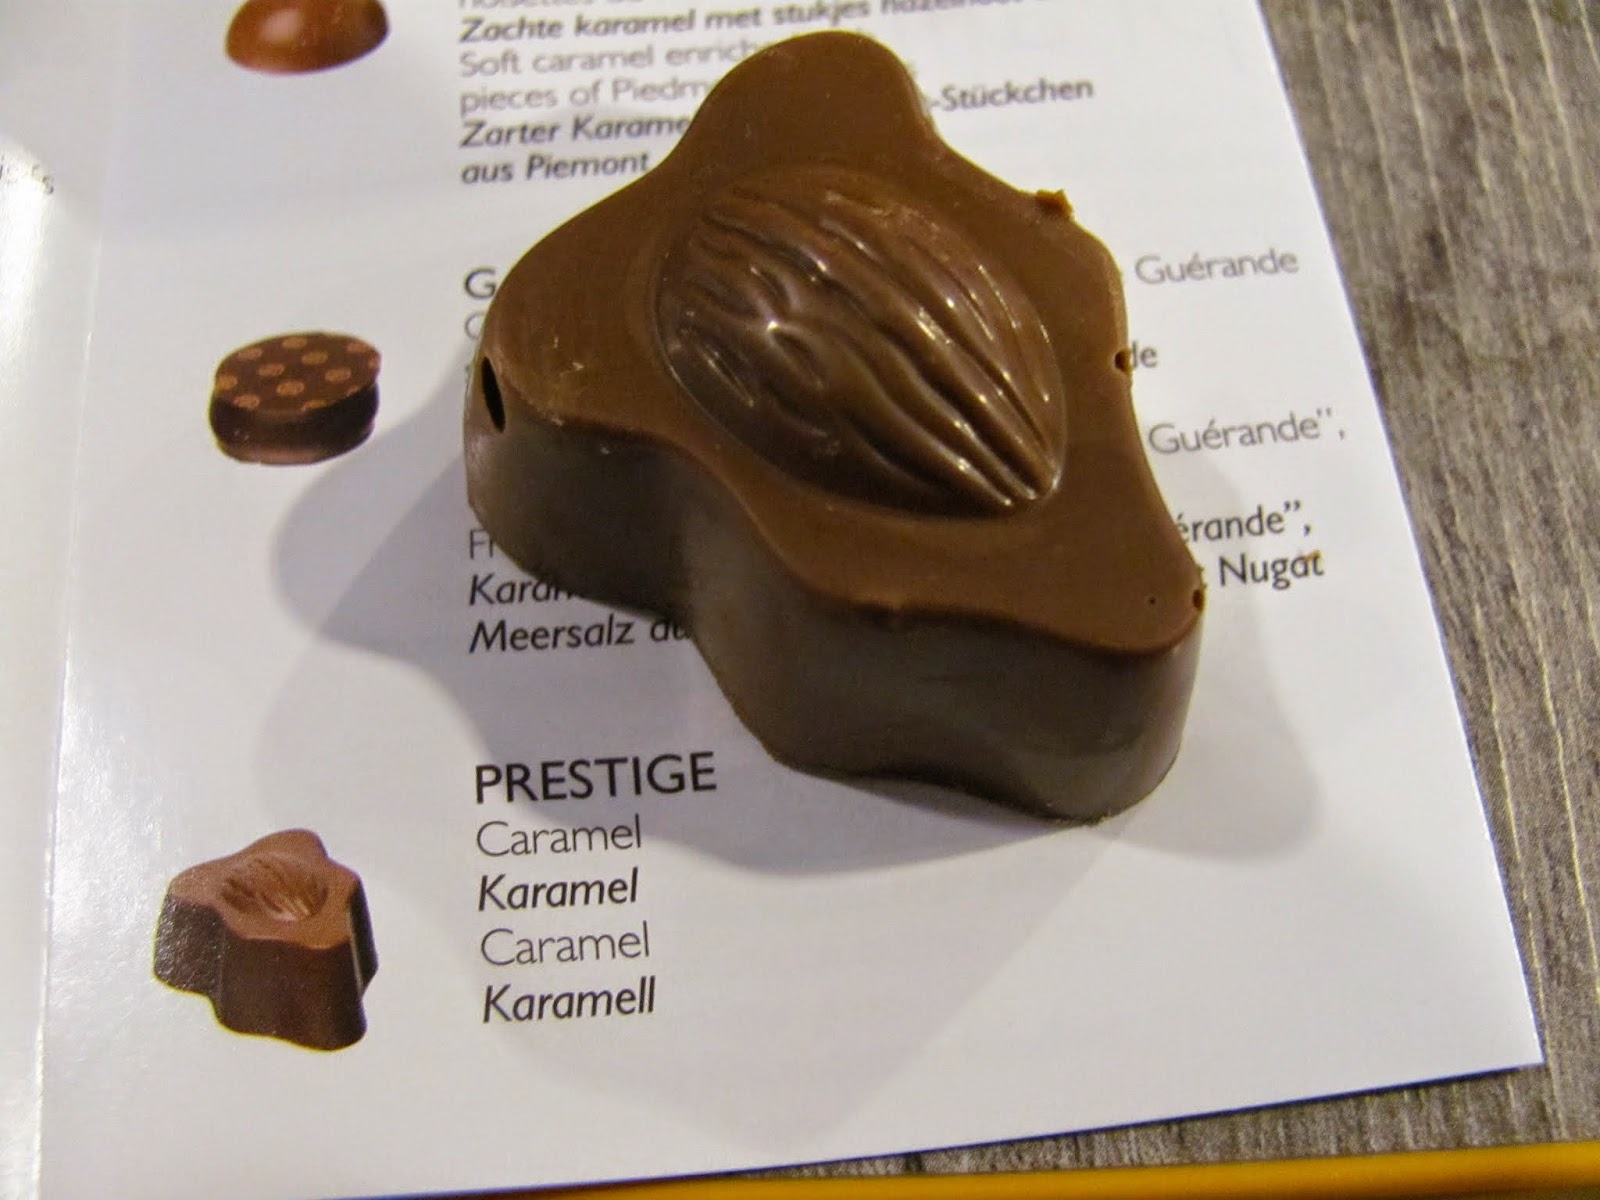 Prestige Chocolate Brussels Belgium